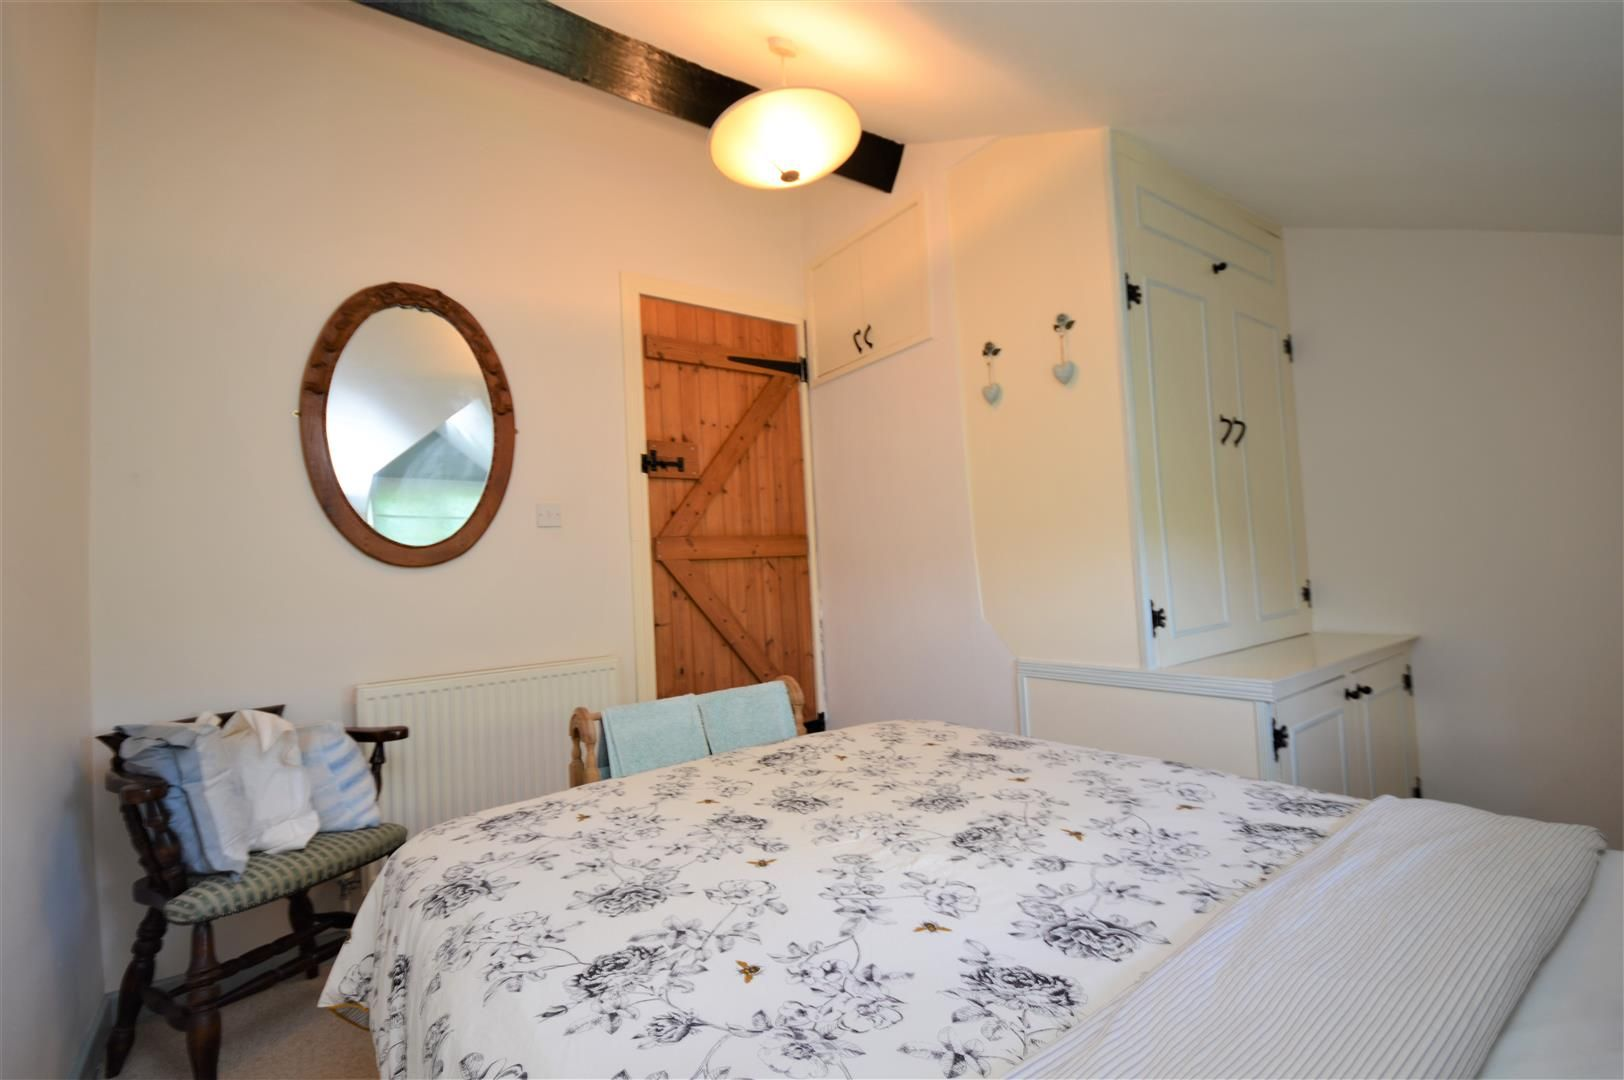 3 bed semi-detached for sale in Stretton Sugwas  - Property Image 12